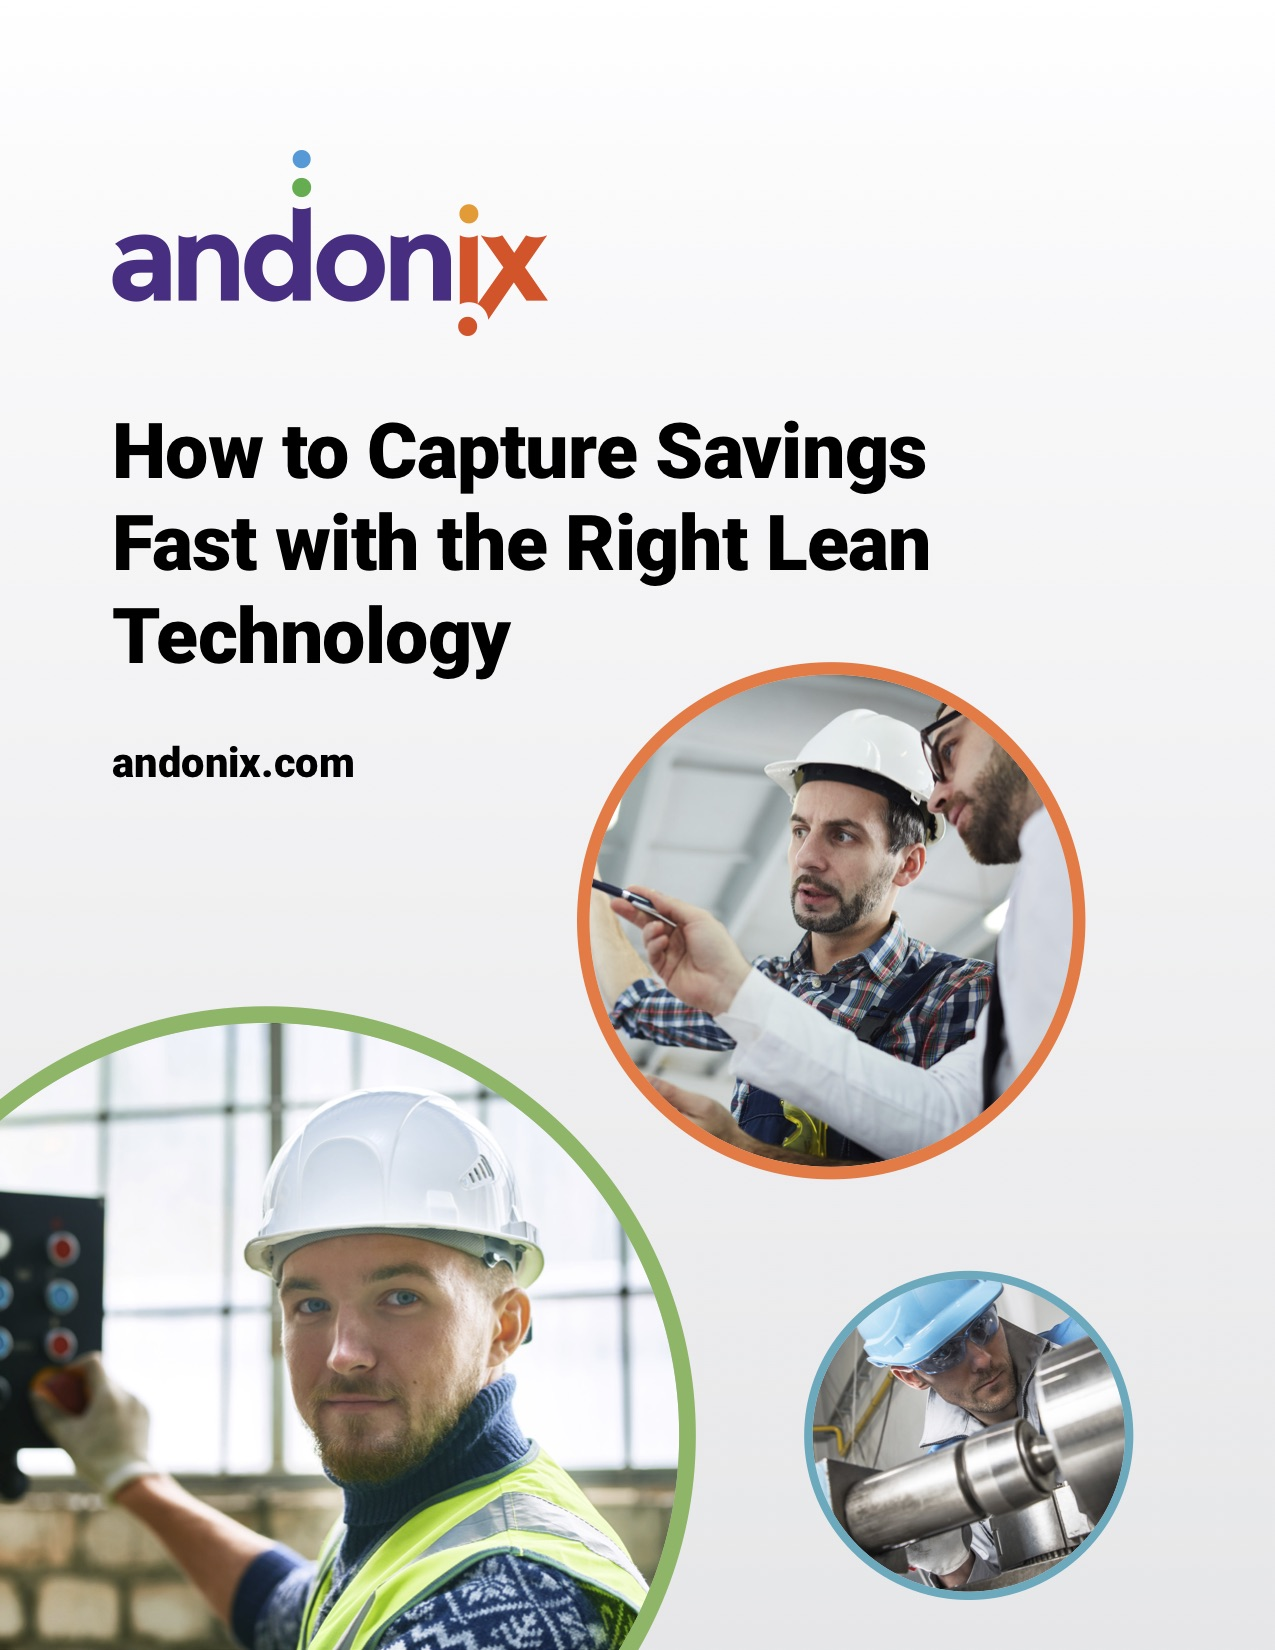 Andonix_How_To_Capture_Savings_Fast (1)